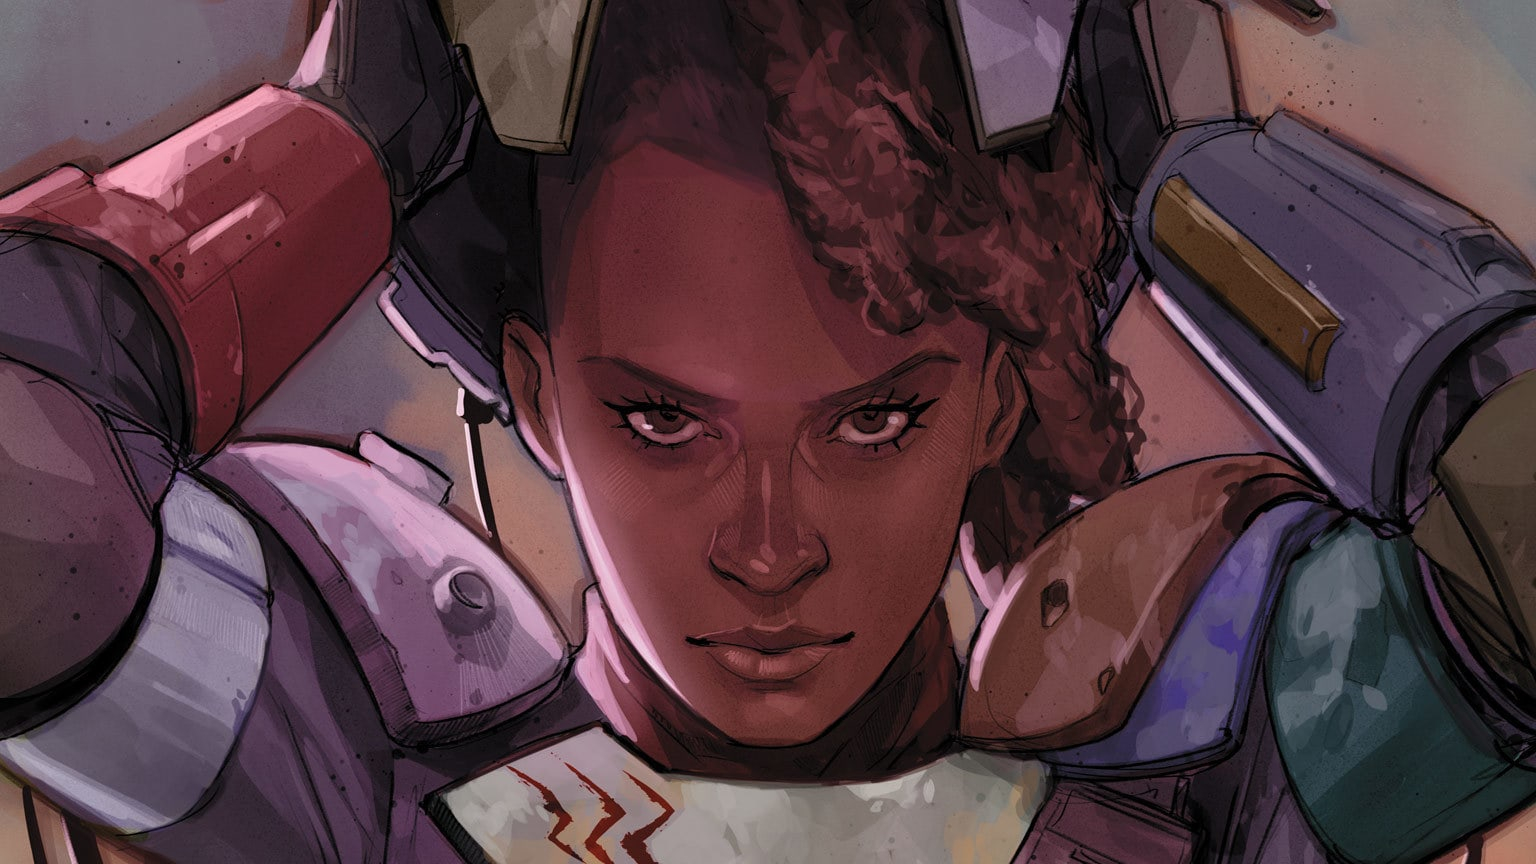 Keeve Treenis Joins the Storm in Marvel's Star Wars: The High Republic #9 – Exclusive Preview